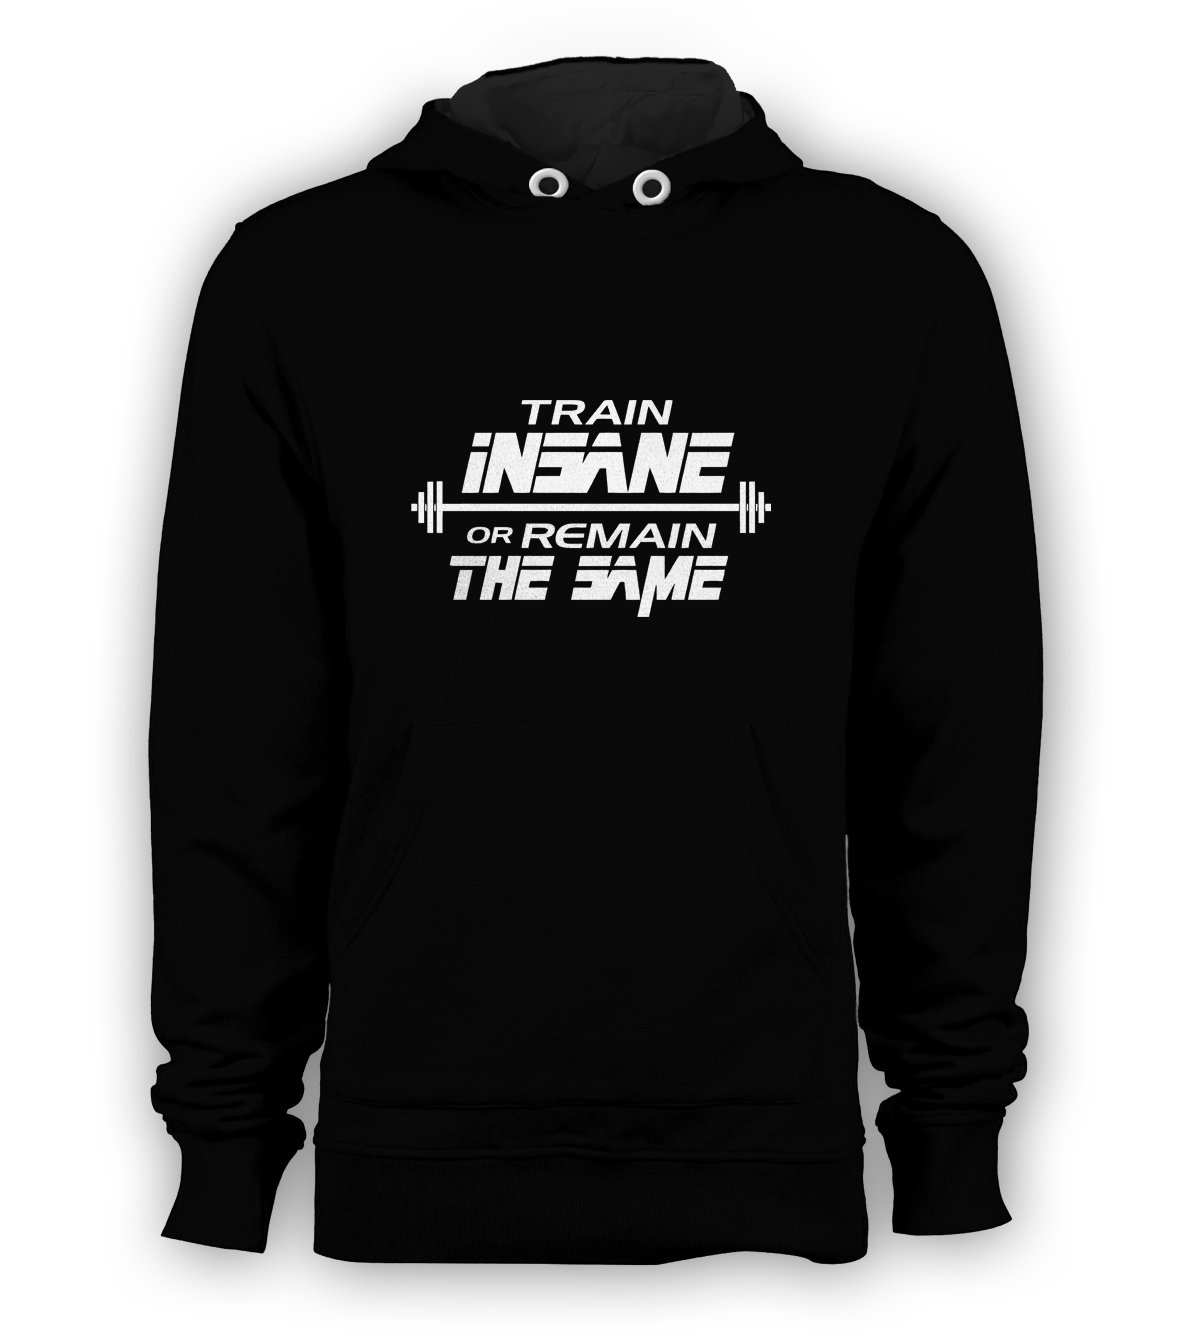 GYM TRAINING TRAIN INSANE OR REMAIN THE SAME Pullover Hoodie Men Sweatshirts Size S to 3XL New Black